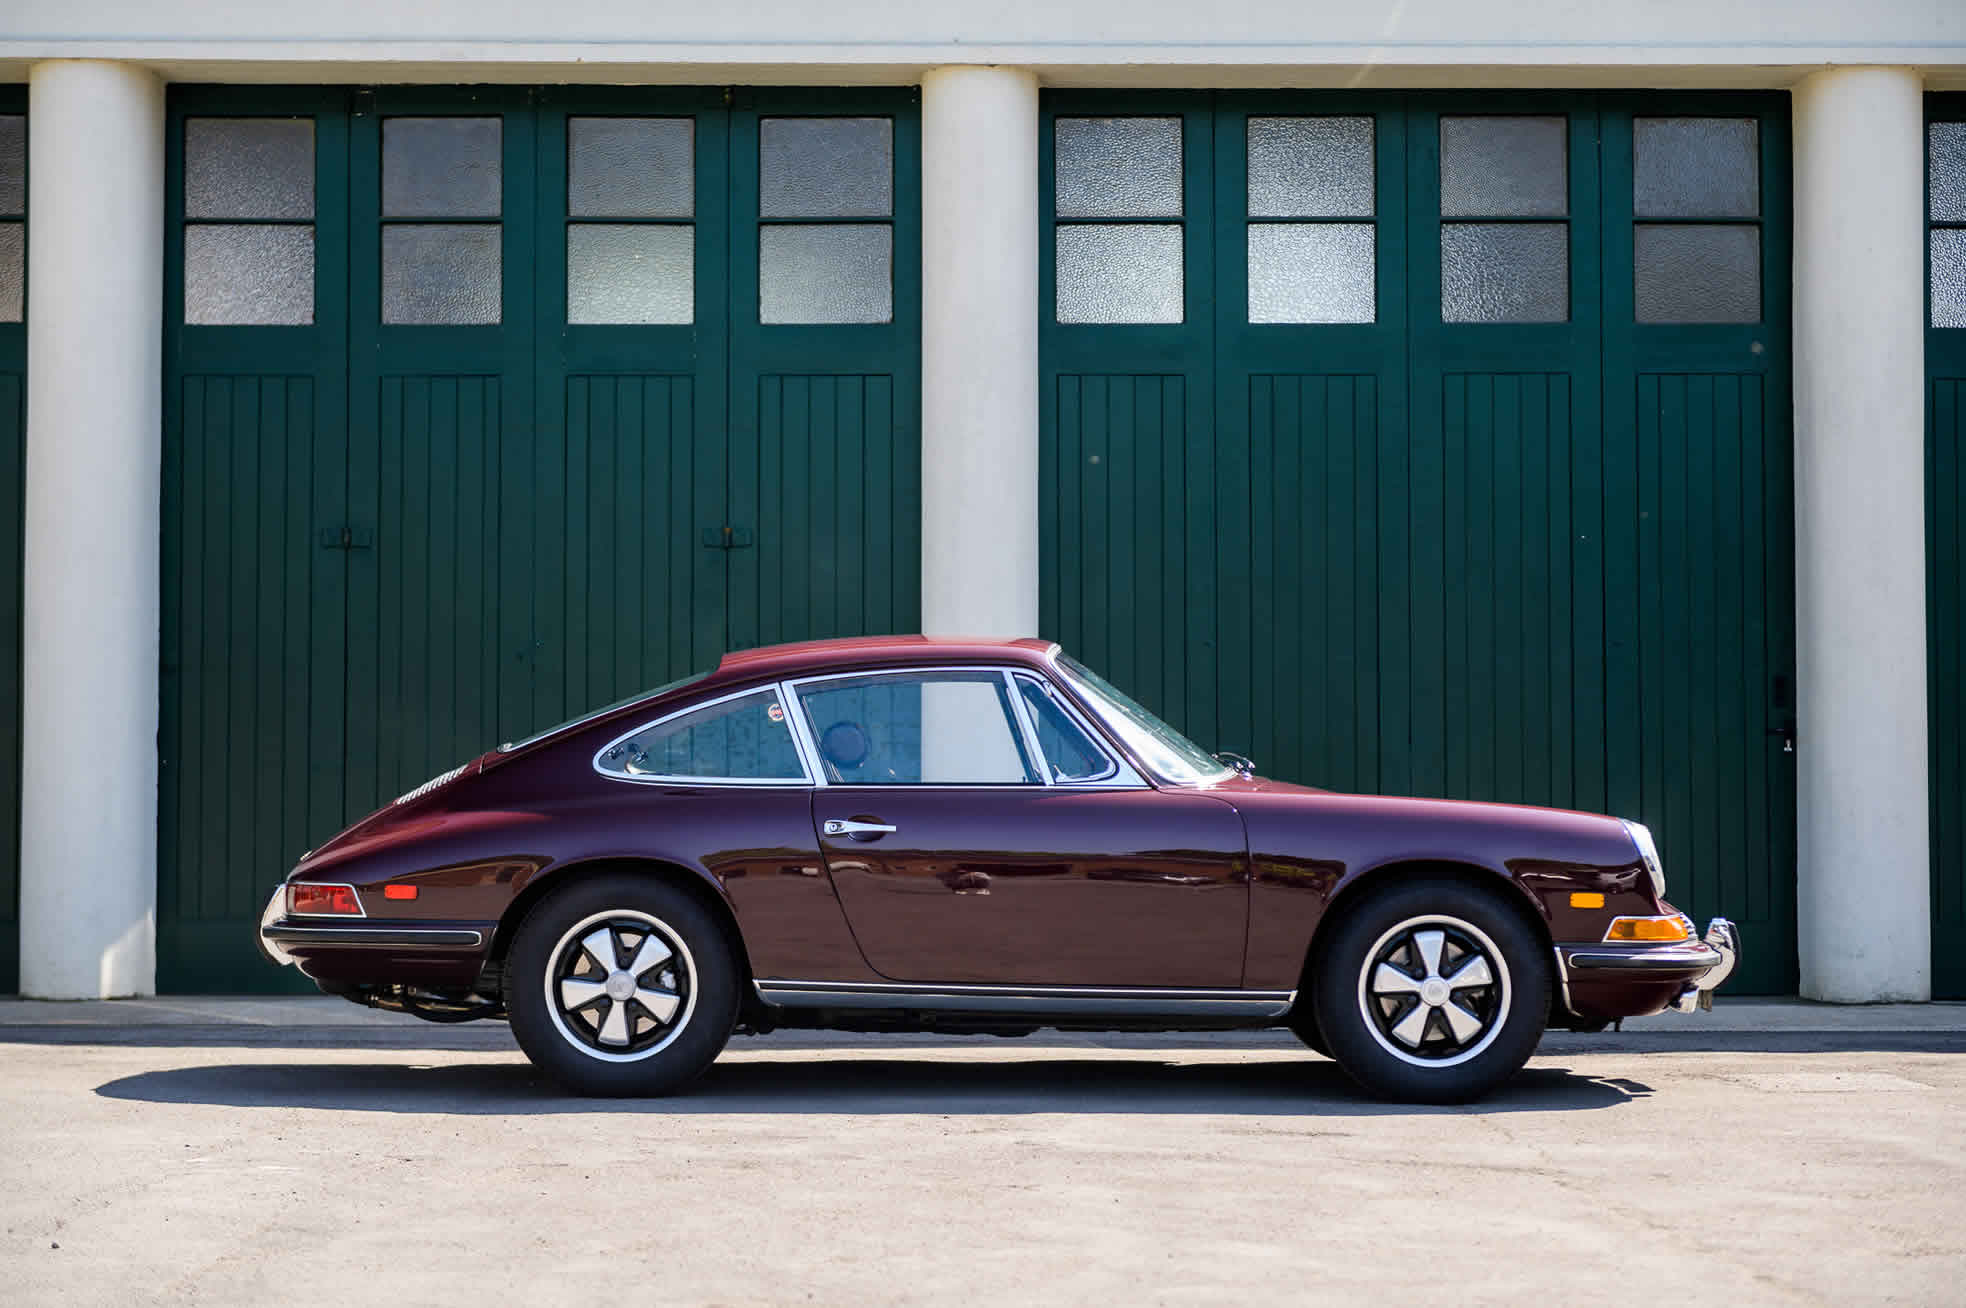 For Sale 1968 Porsche 911 L Sports Purpose Bicester Heritage tool kit